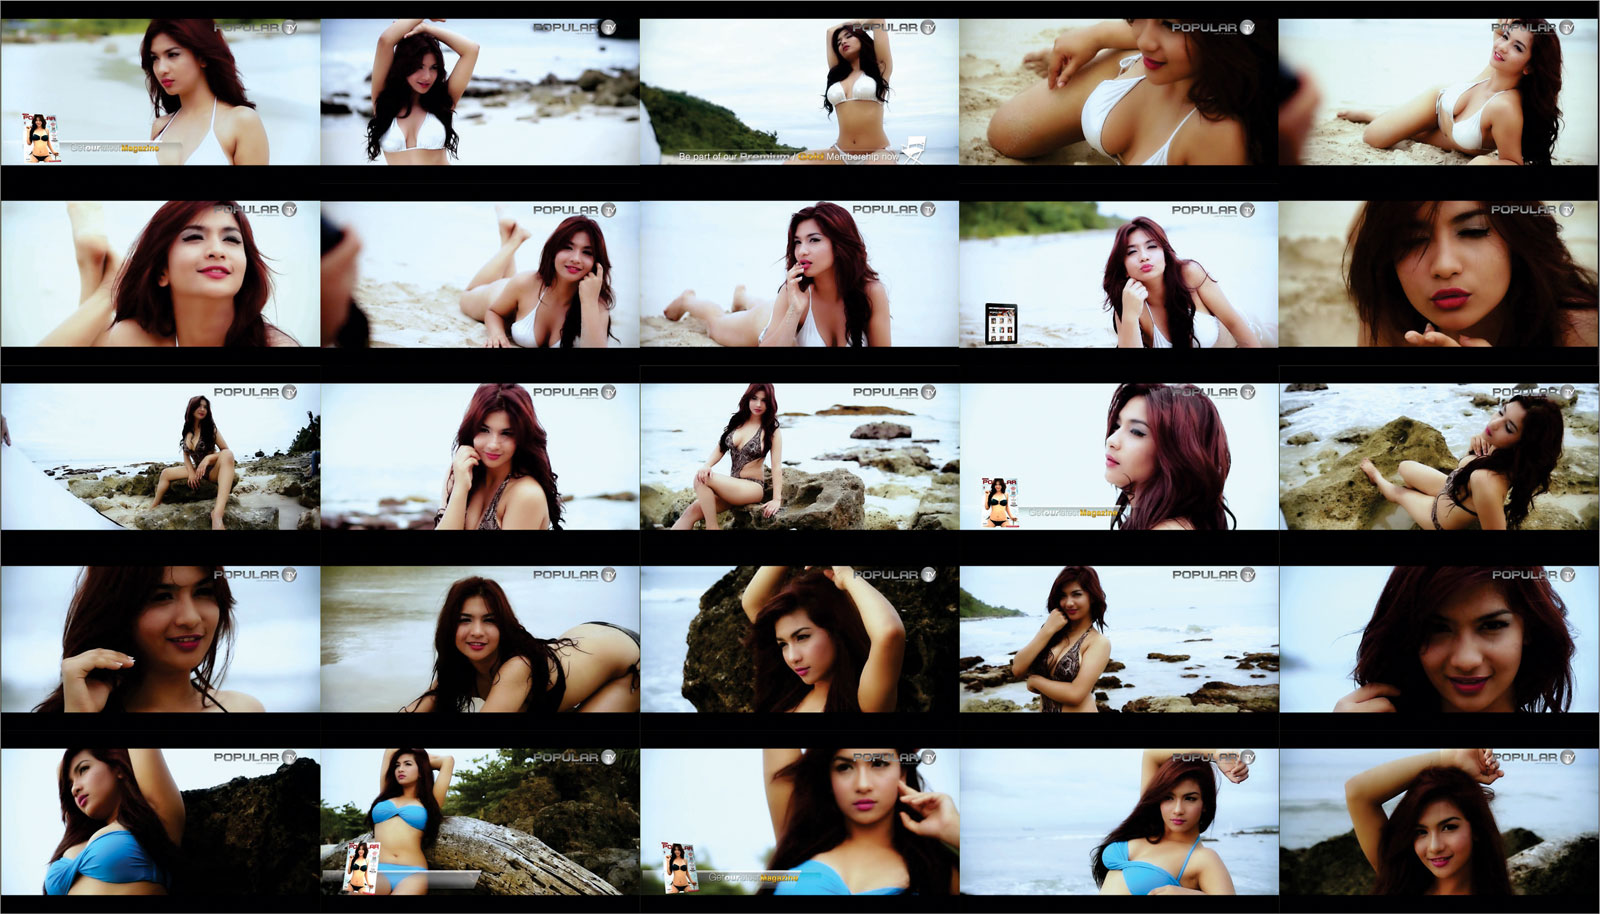 Download Video BTS (Behind The Scene) Sexy Siva Aprilia